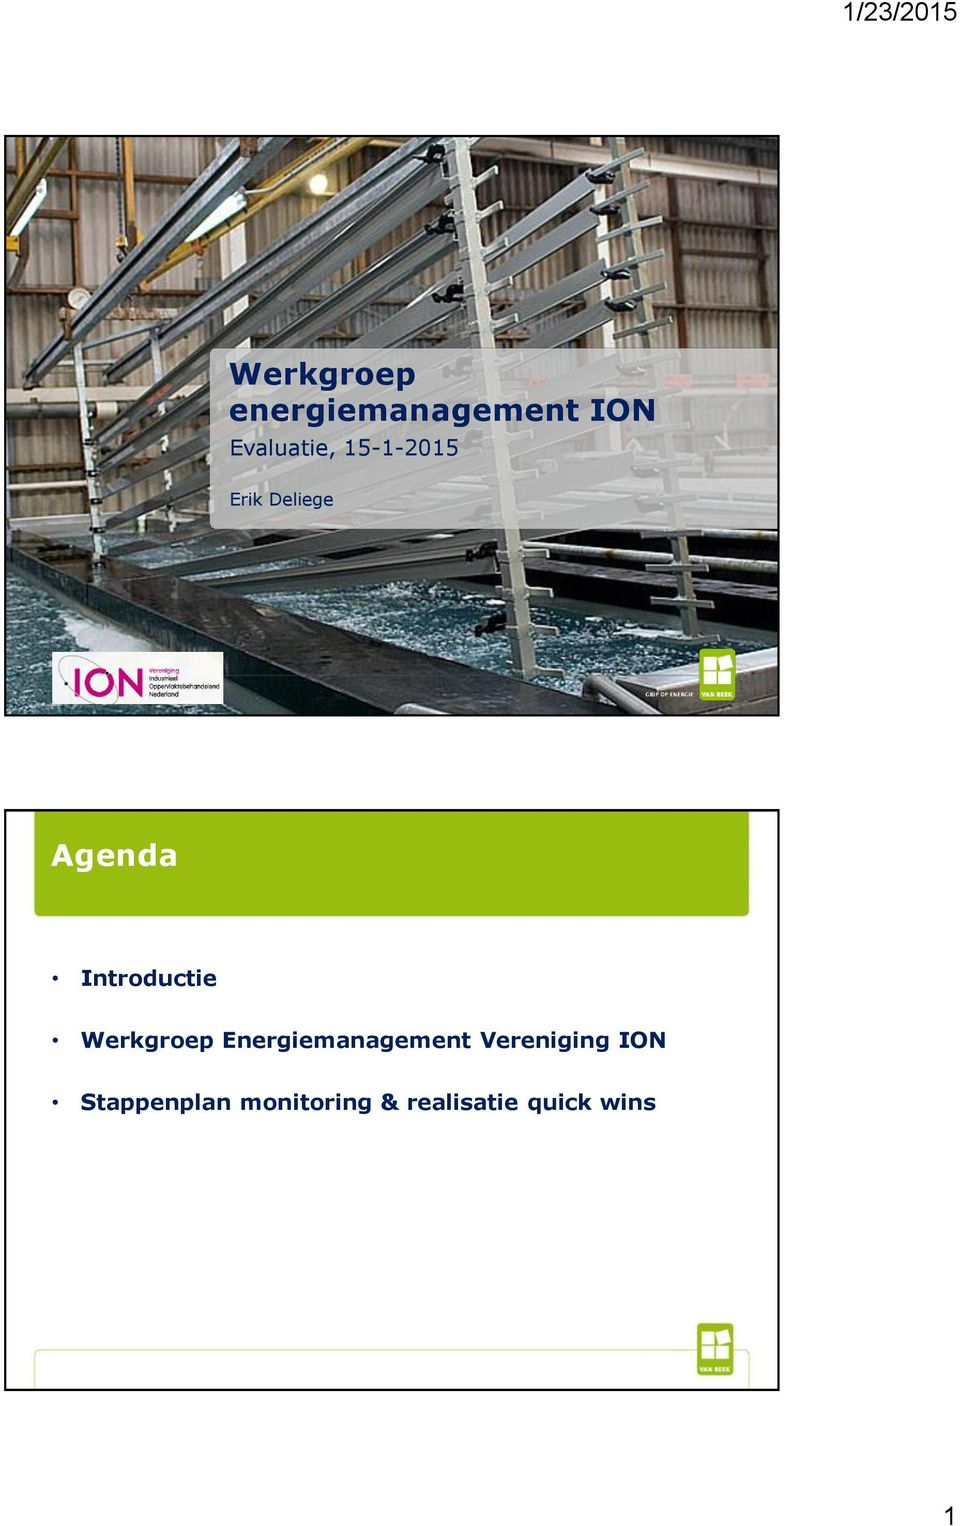 Werkgroep Energiemanagement Vereniging ION